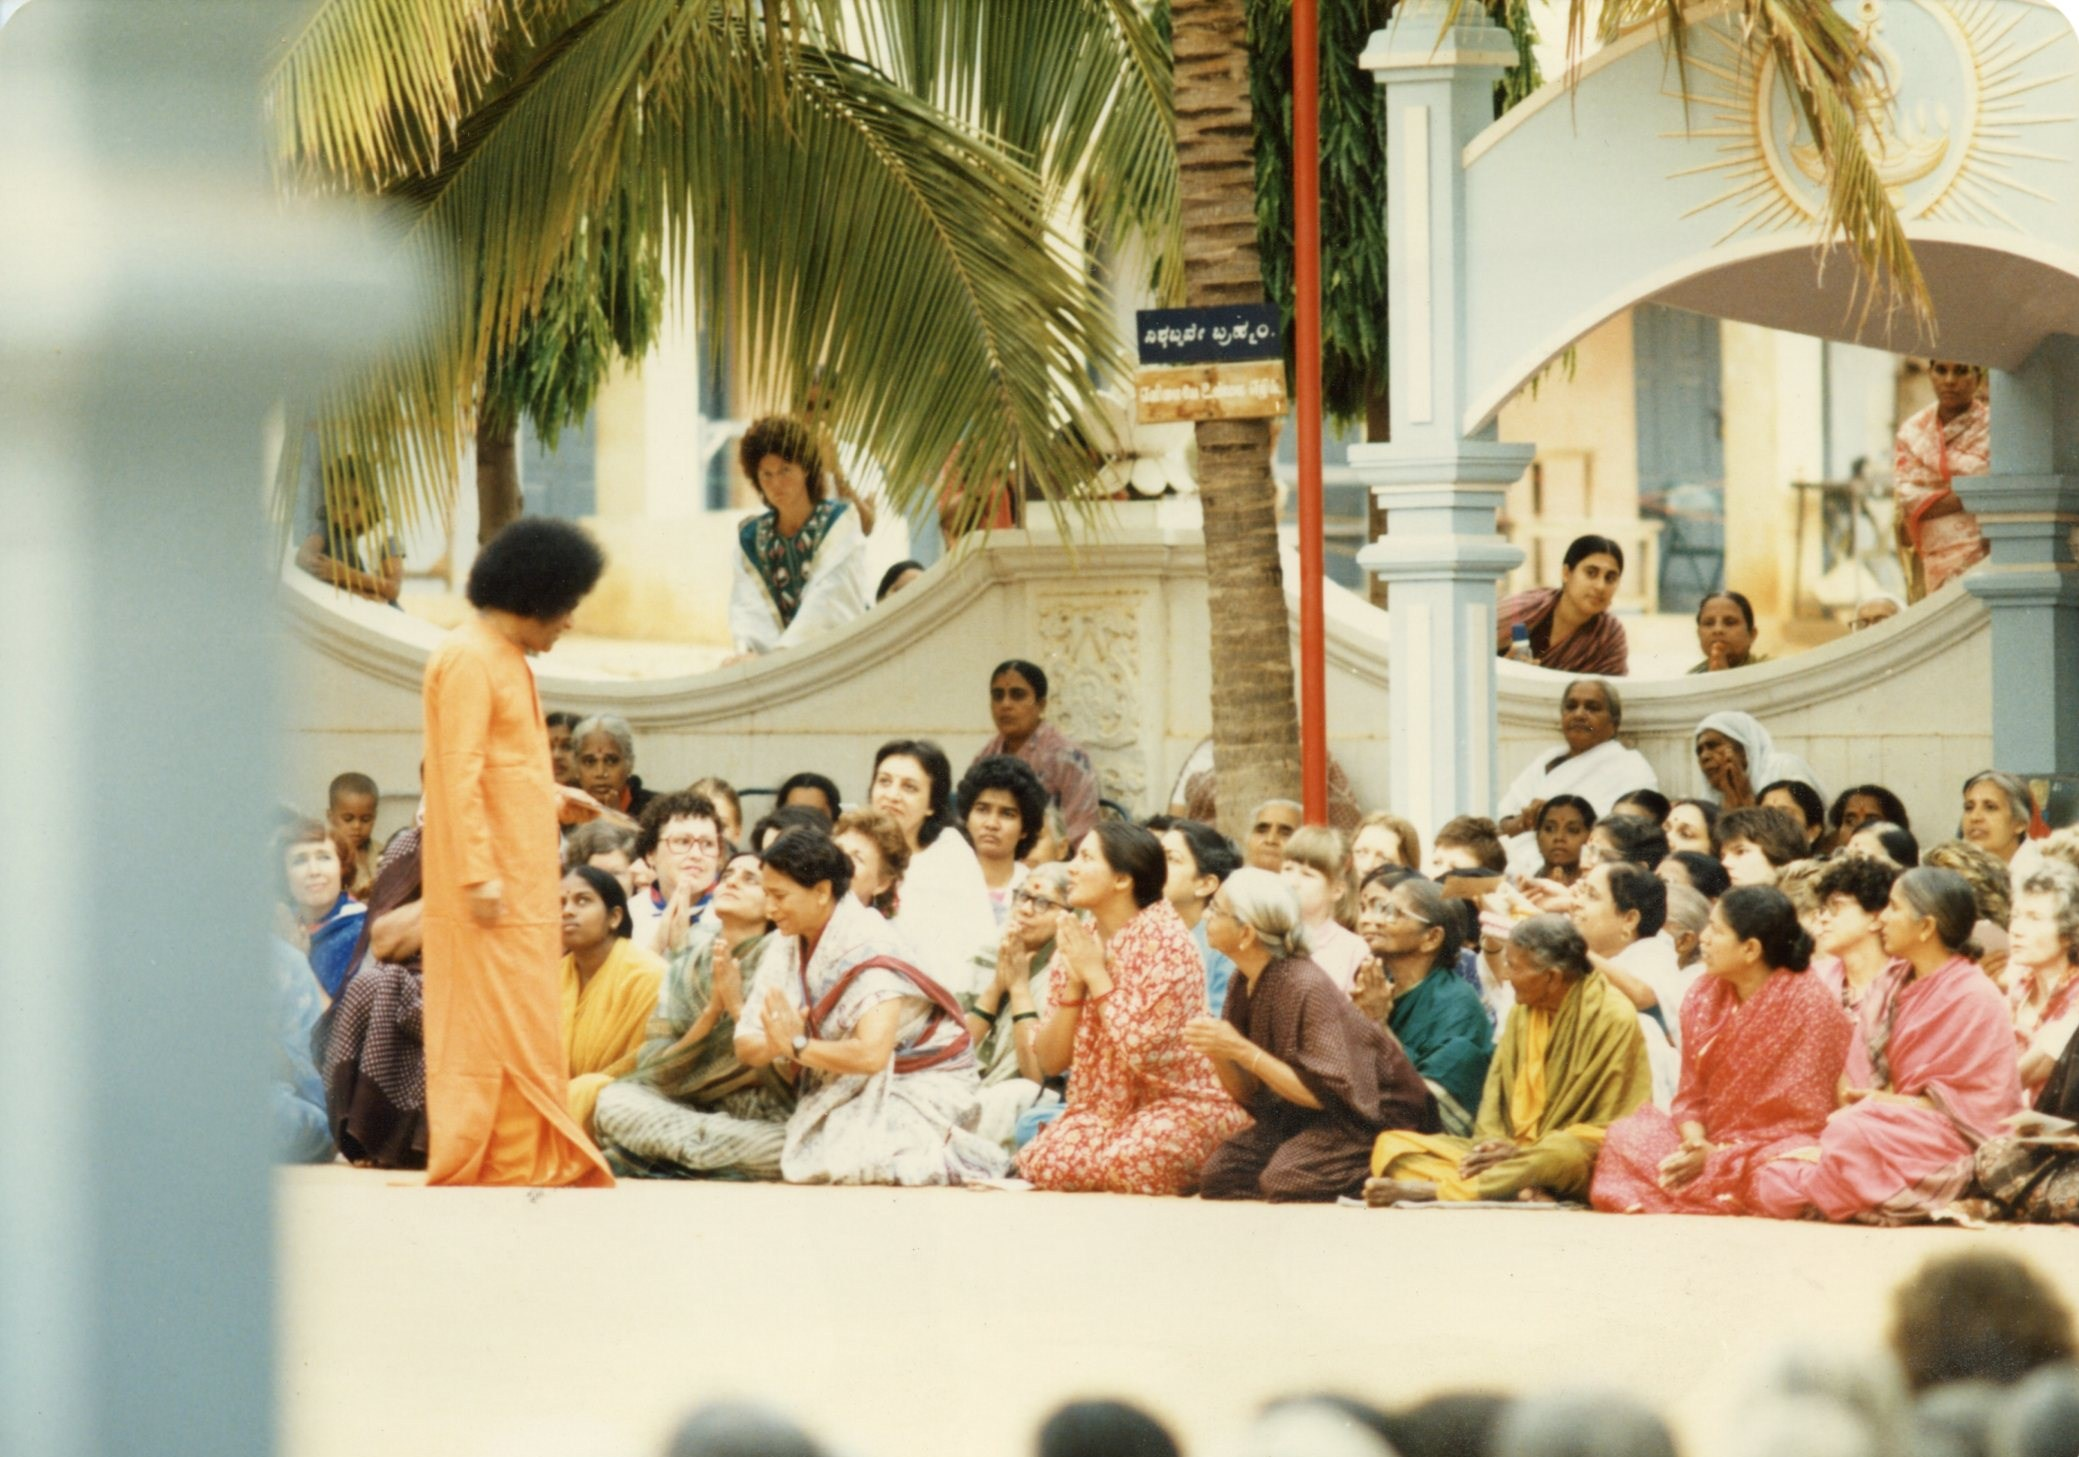 above: Sathya Sai Baba Blessing Ceremony at his ashram Prasanthi Nilayam (Joan Brown on far left), Puttaparthi, India. © The Joan Brown Estate; collection of Michael Hebel and Noel Neri, San Francisco.